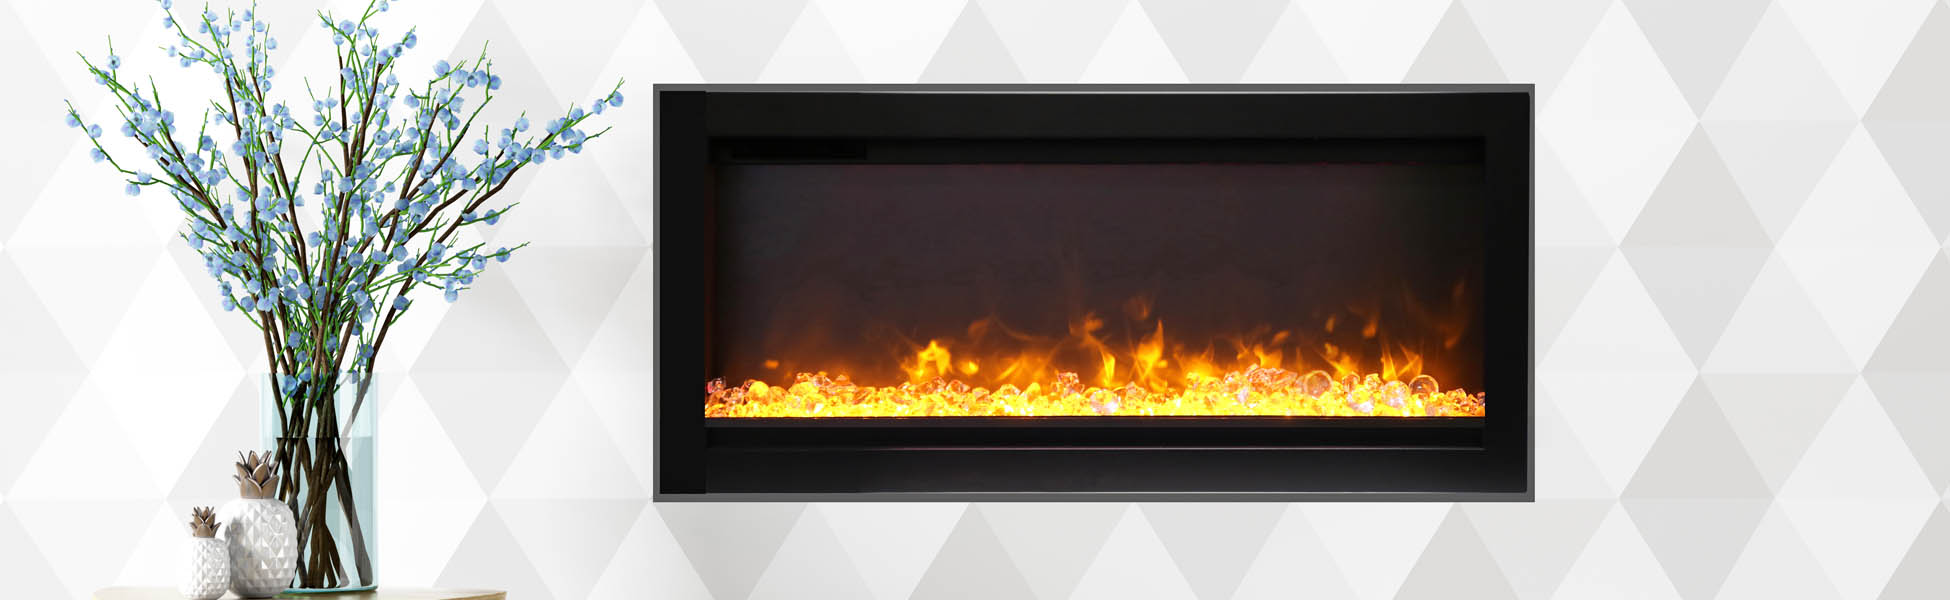 SYM-B electric fireplace